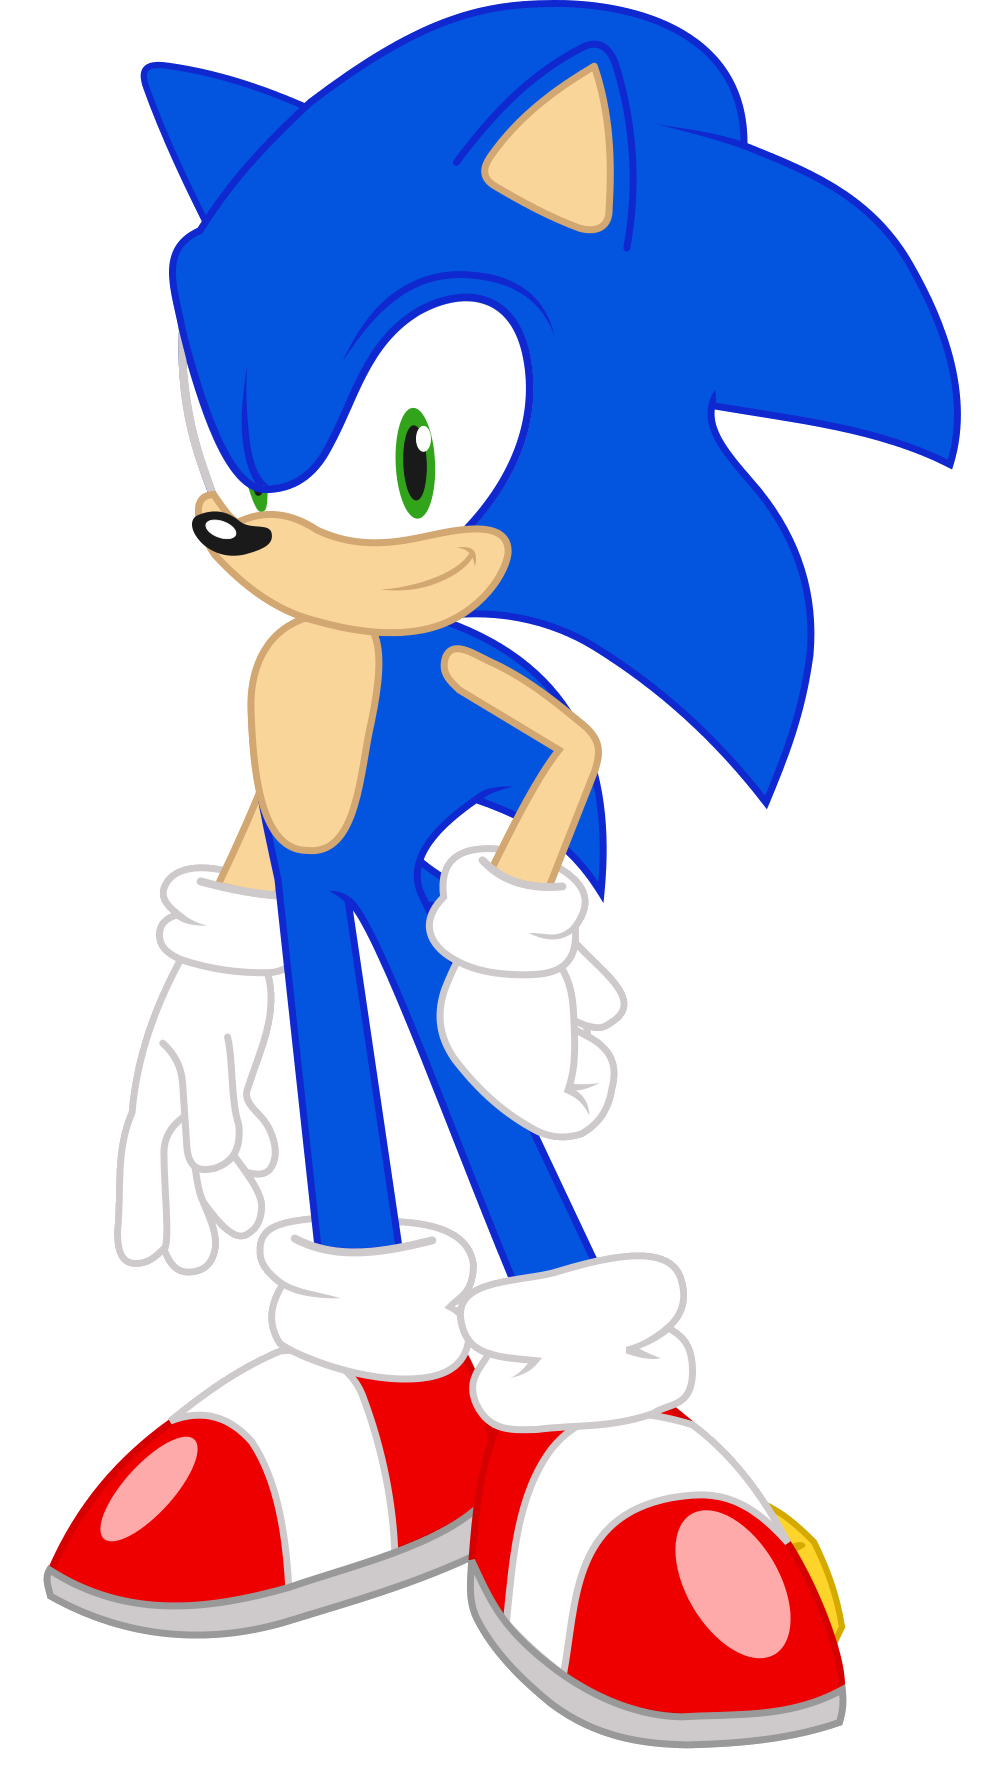 Sonic Equestria Vector Sonic The Hedgehog By Sonicdash759 On Deviantart